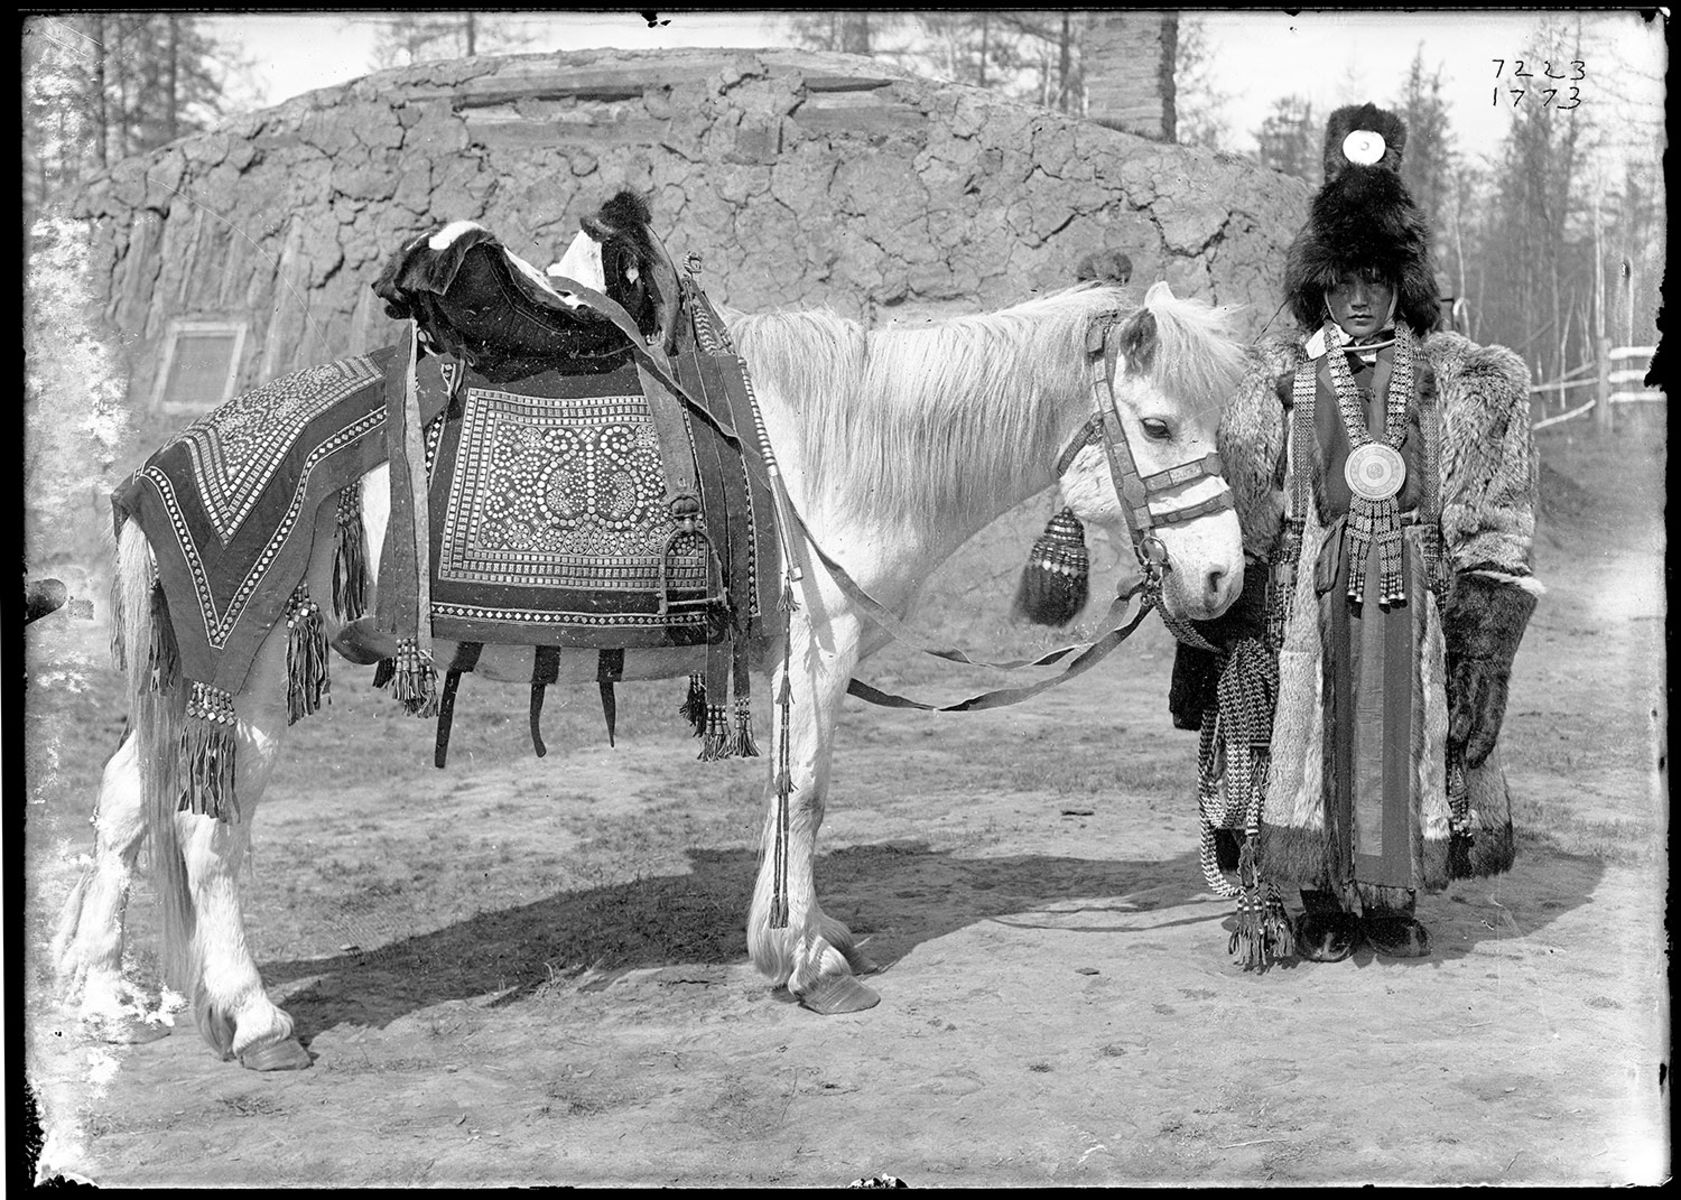 Woman draped in heavy, ornate robes and headgear, stands next to a horse with elaborately decorated bridle, saddle and blanket.